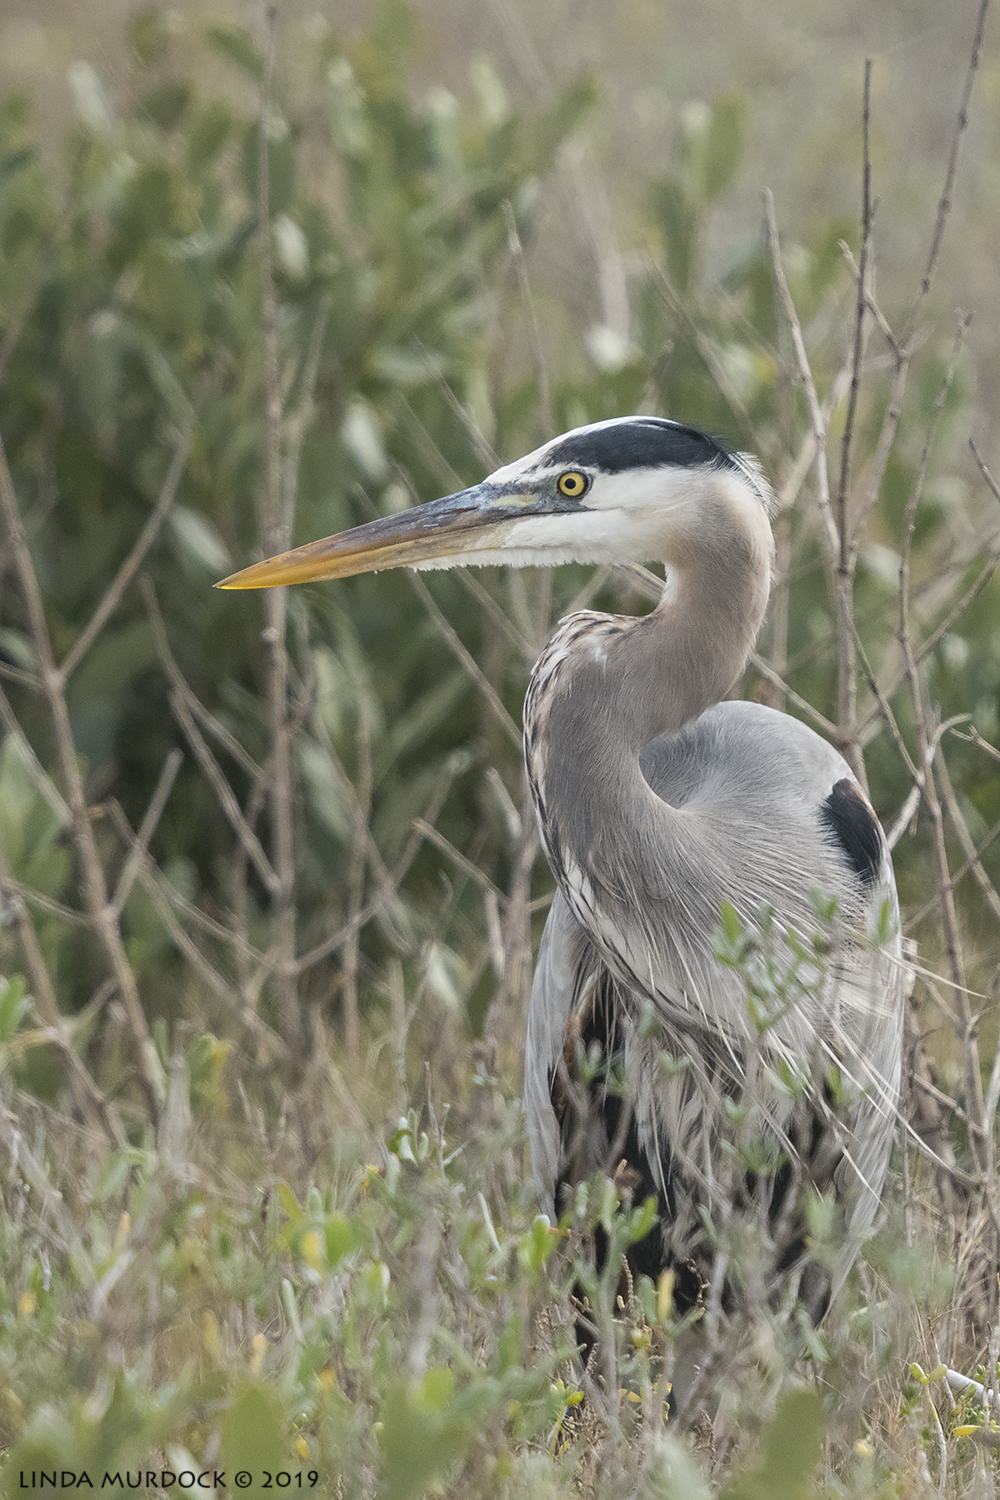 Great Blue Heron in the brush.  Nikon D850 with NIKKOR 300mm f/4E PF ED VR with 1.4x TC~ 1/2000 sec f/6.3 ISO 1000; hand-held